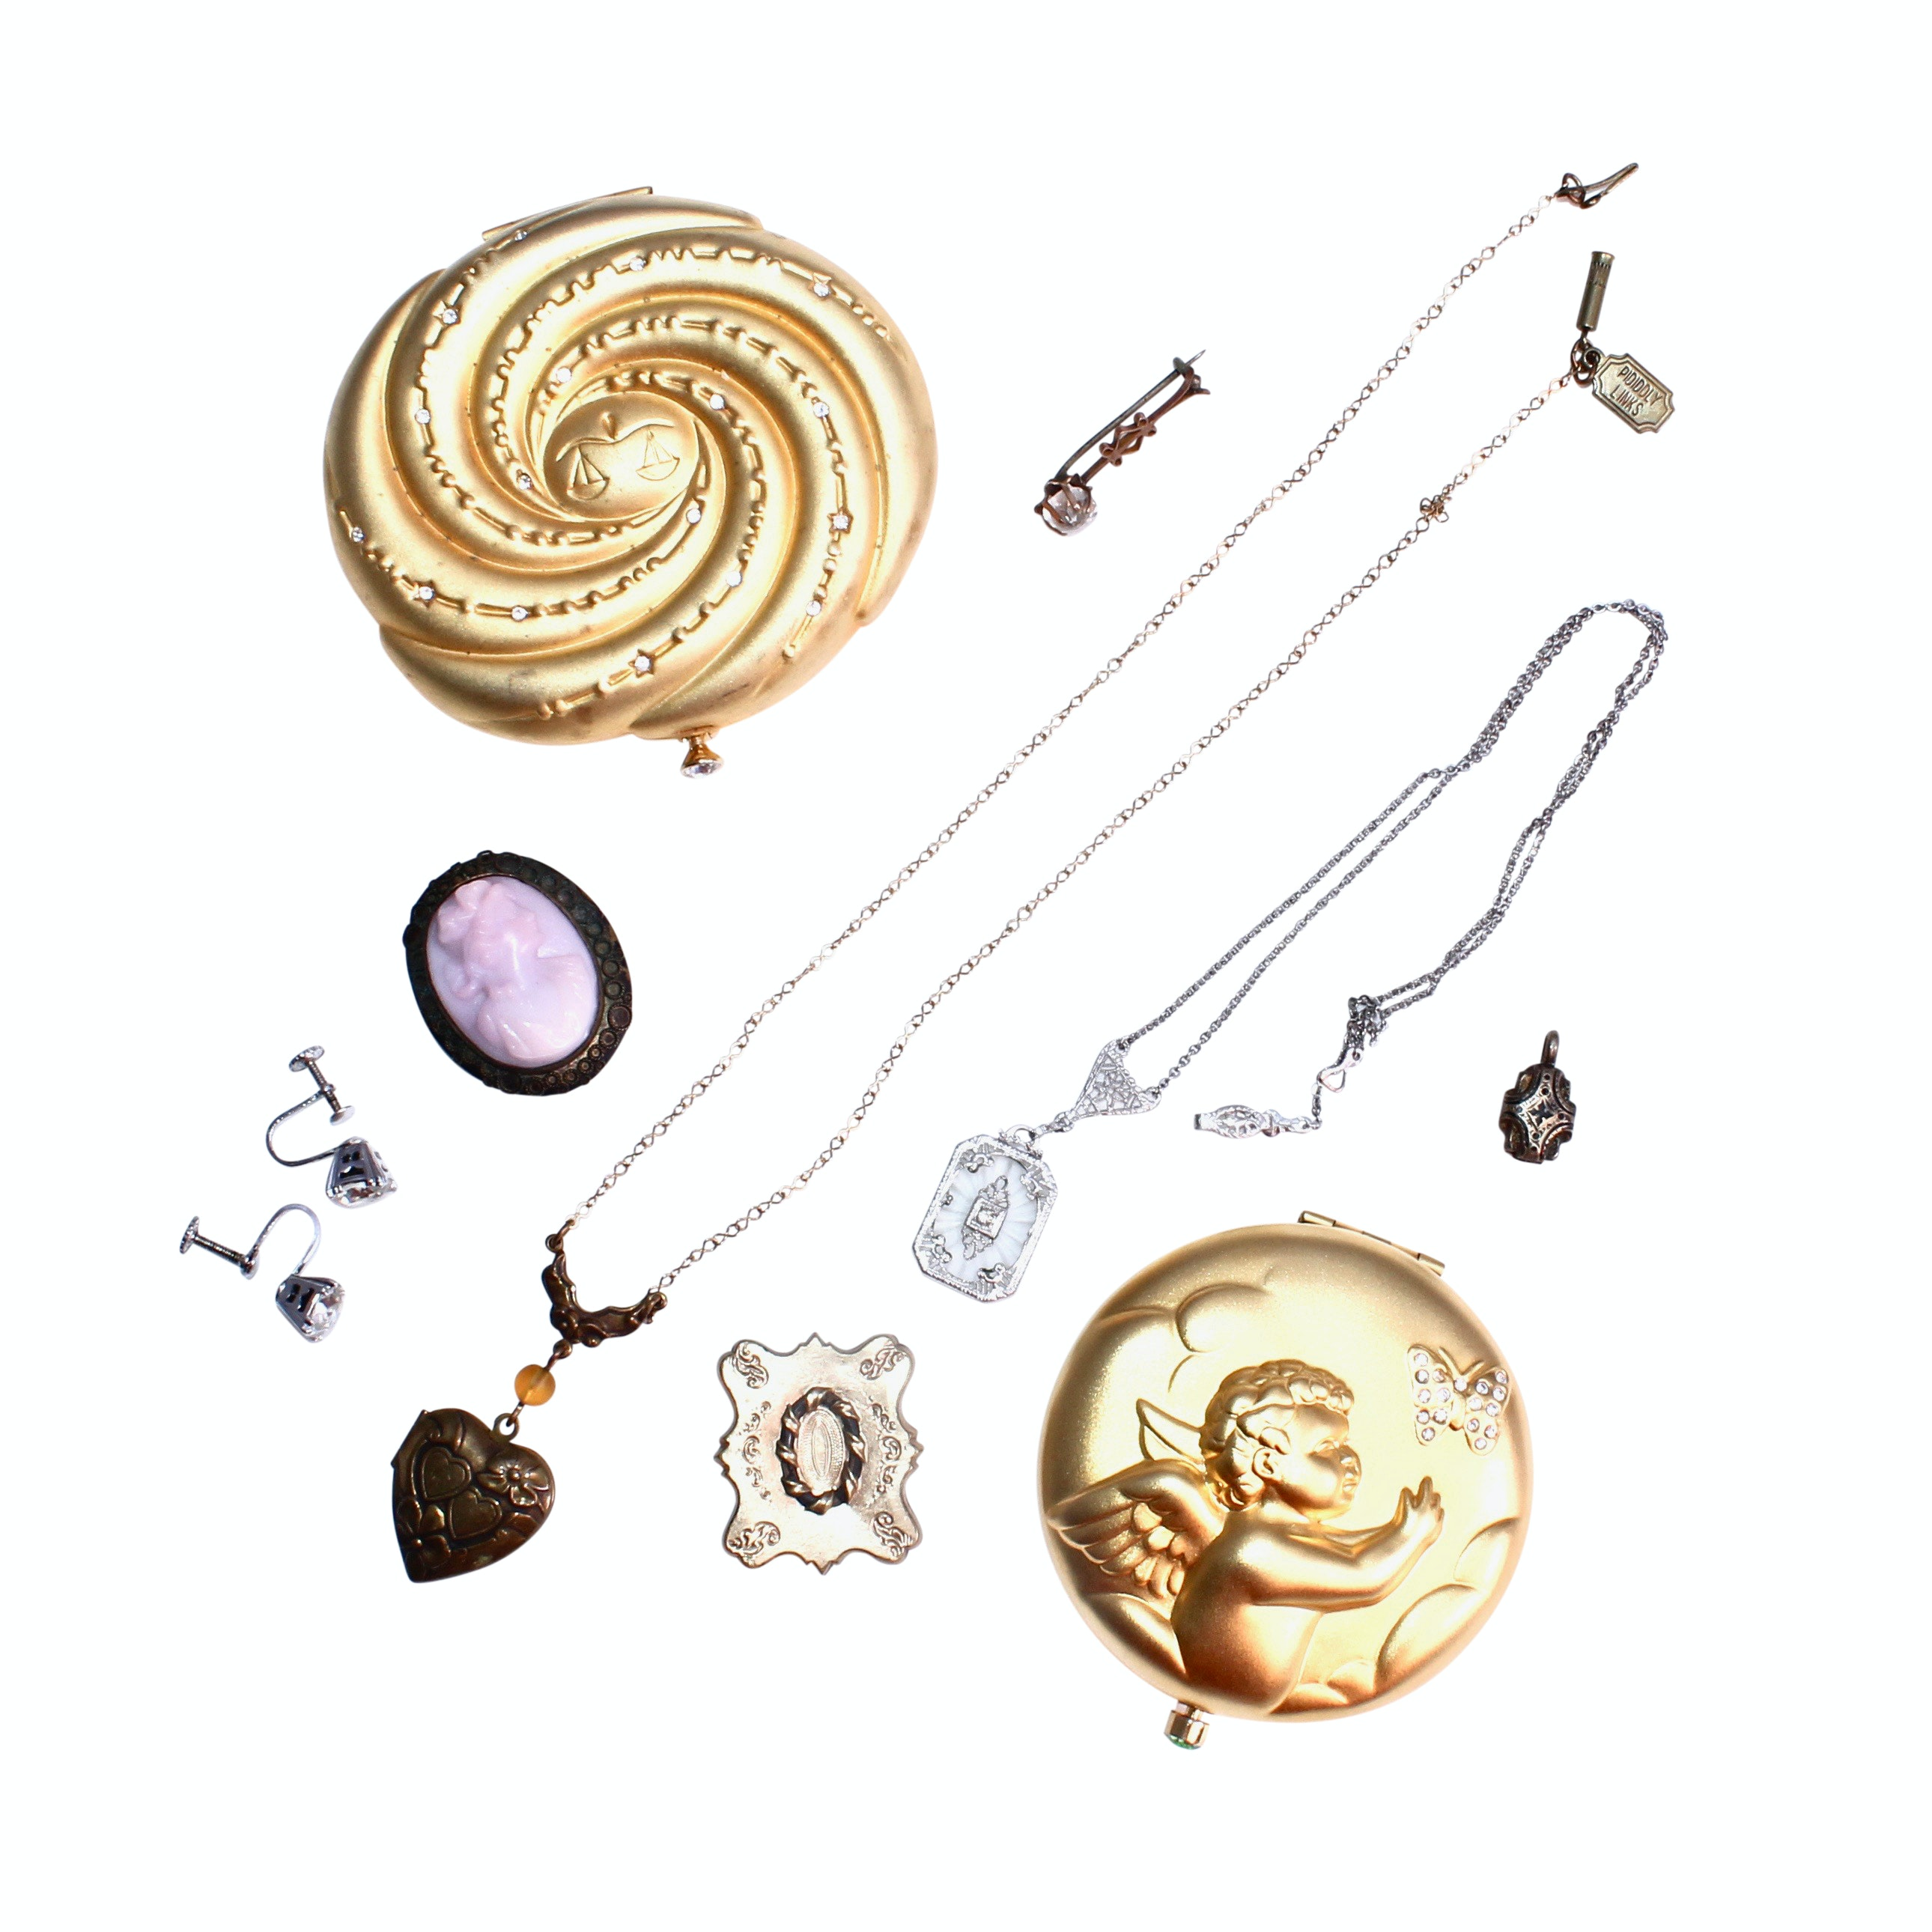 Jewelry Including Cameo Brooch and Compacts